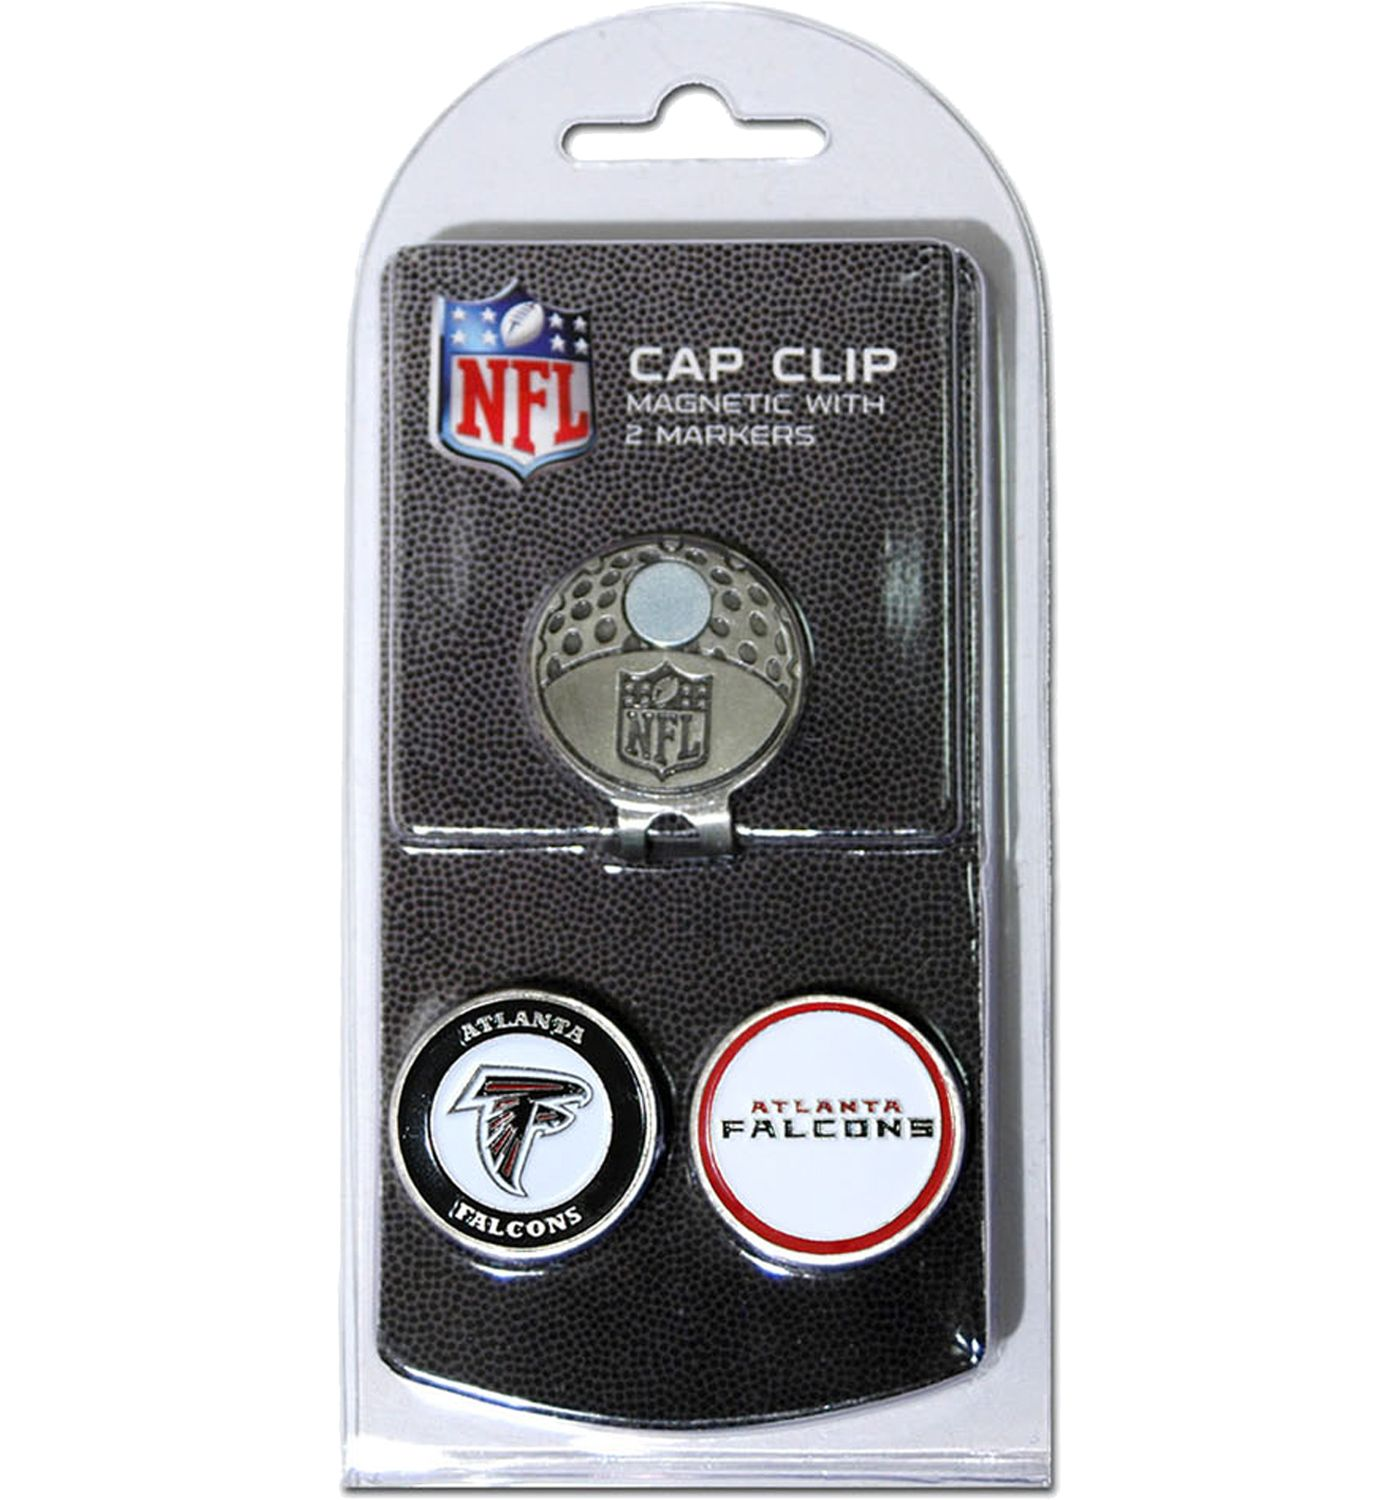 Team Golf Atlanta Falcons Two-Marker Cap Clip